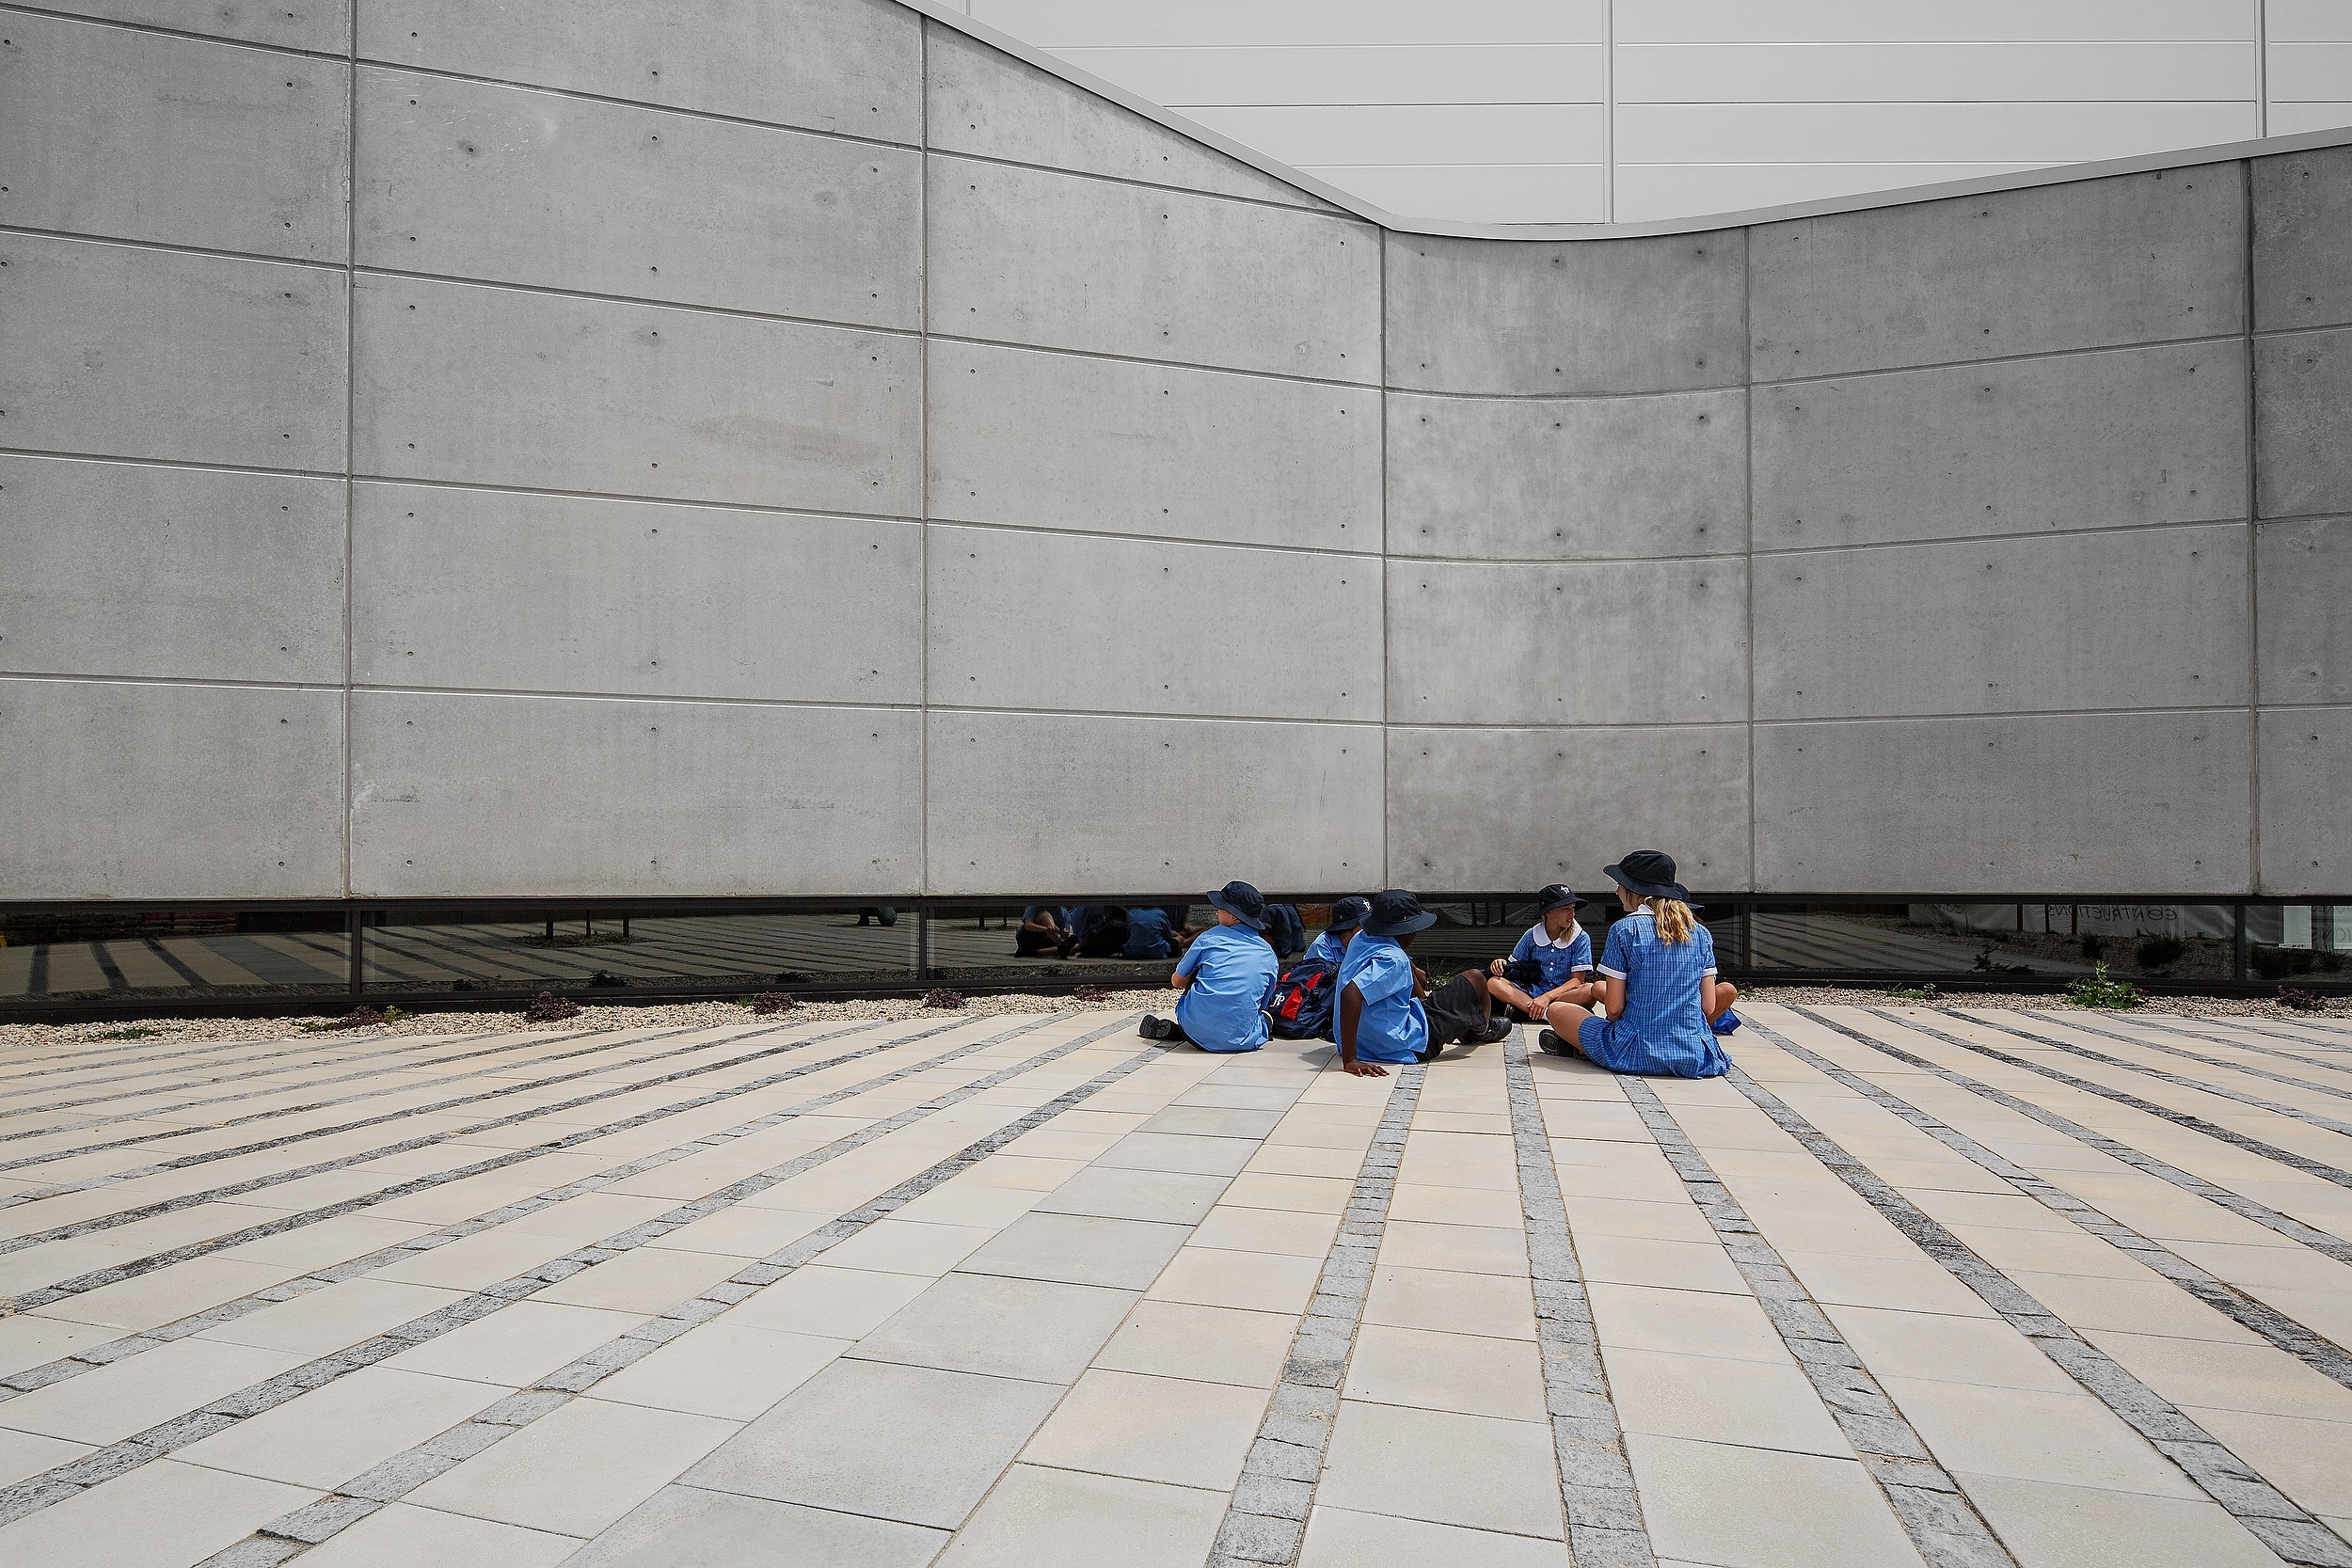 architectural school building in off form concrete curved wall with students sitting on the paving having lunch